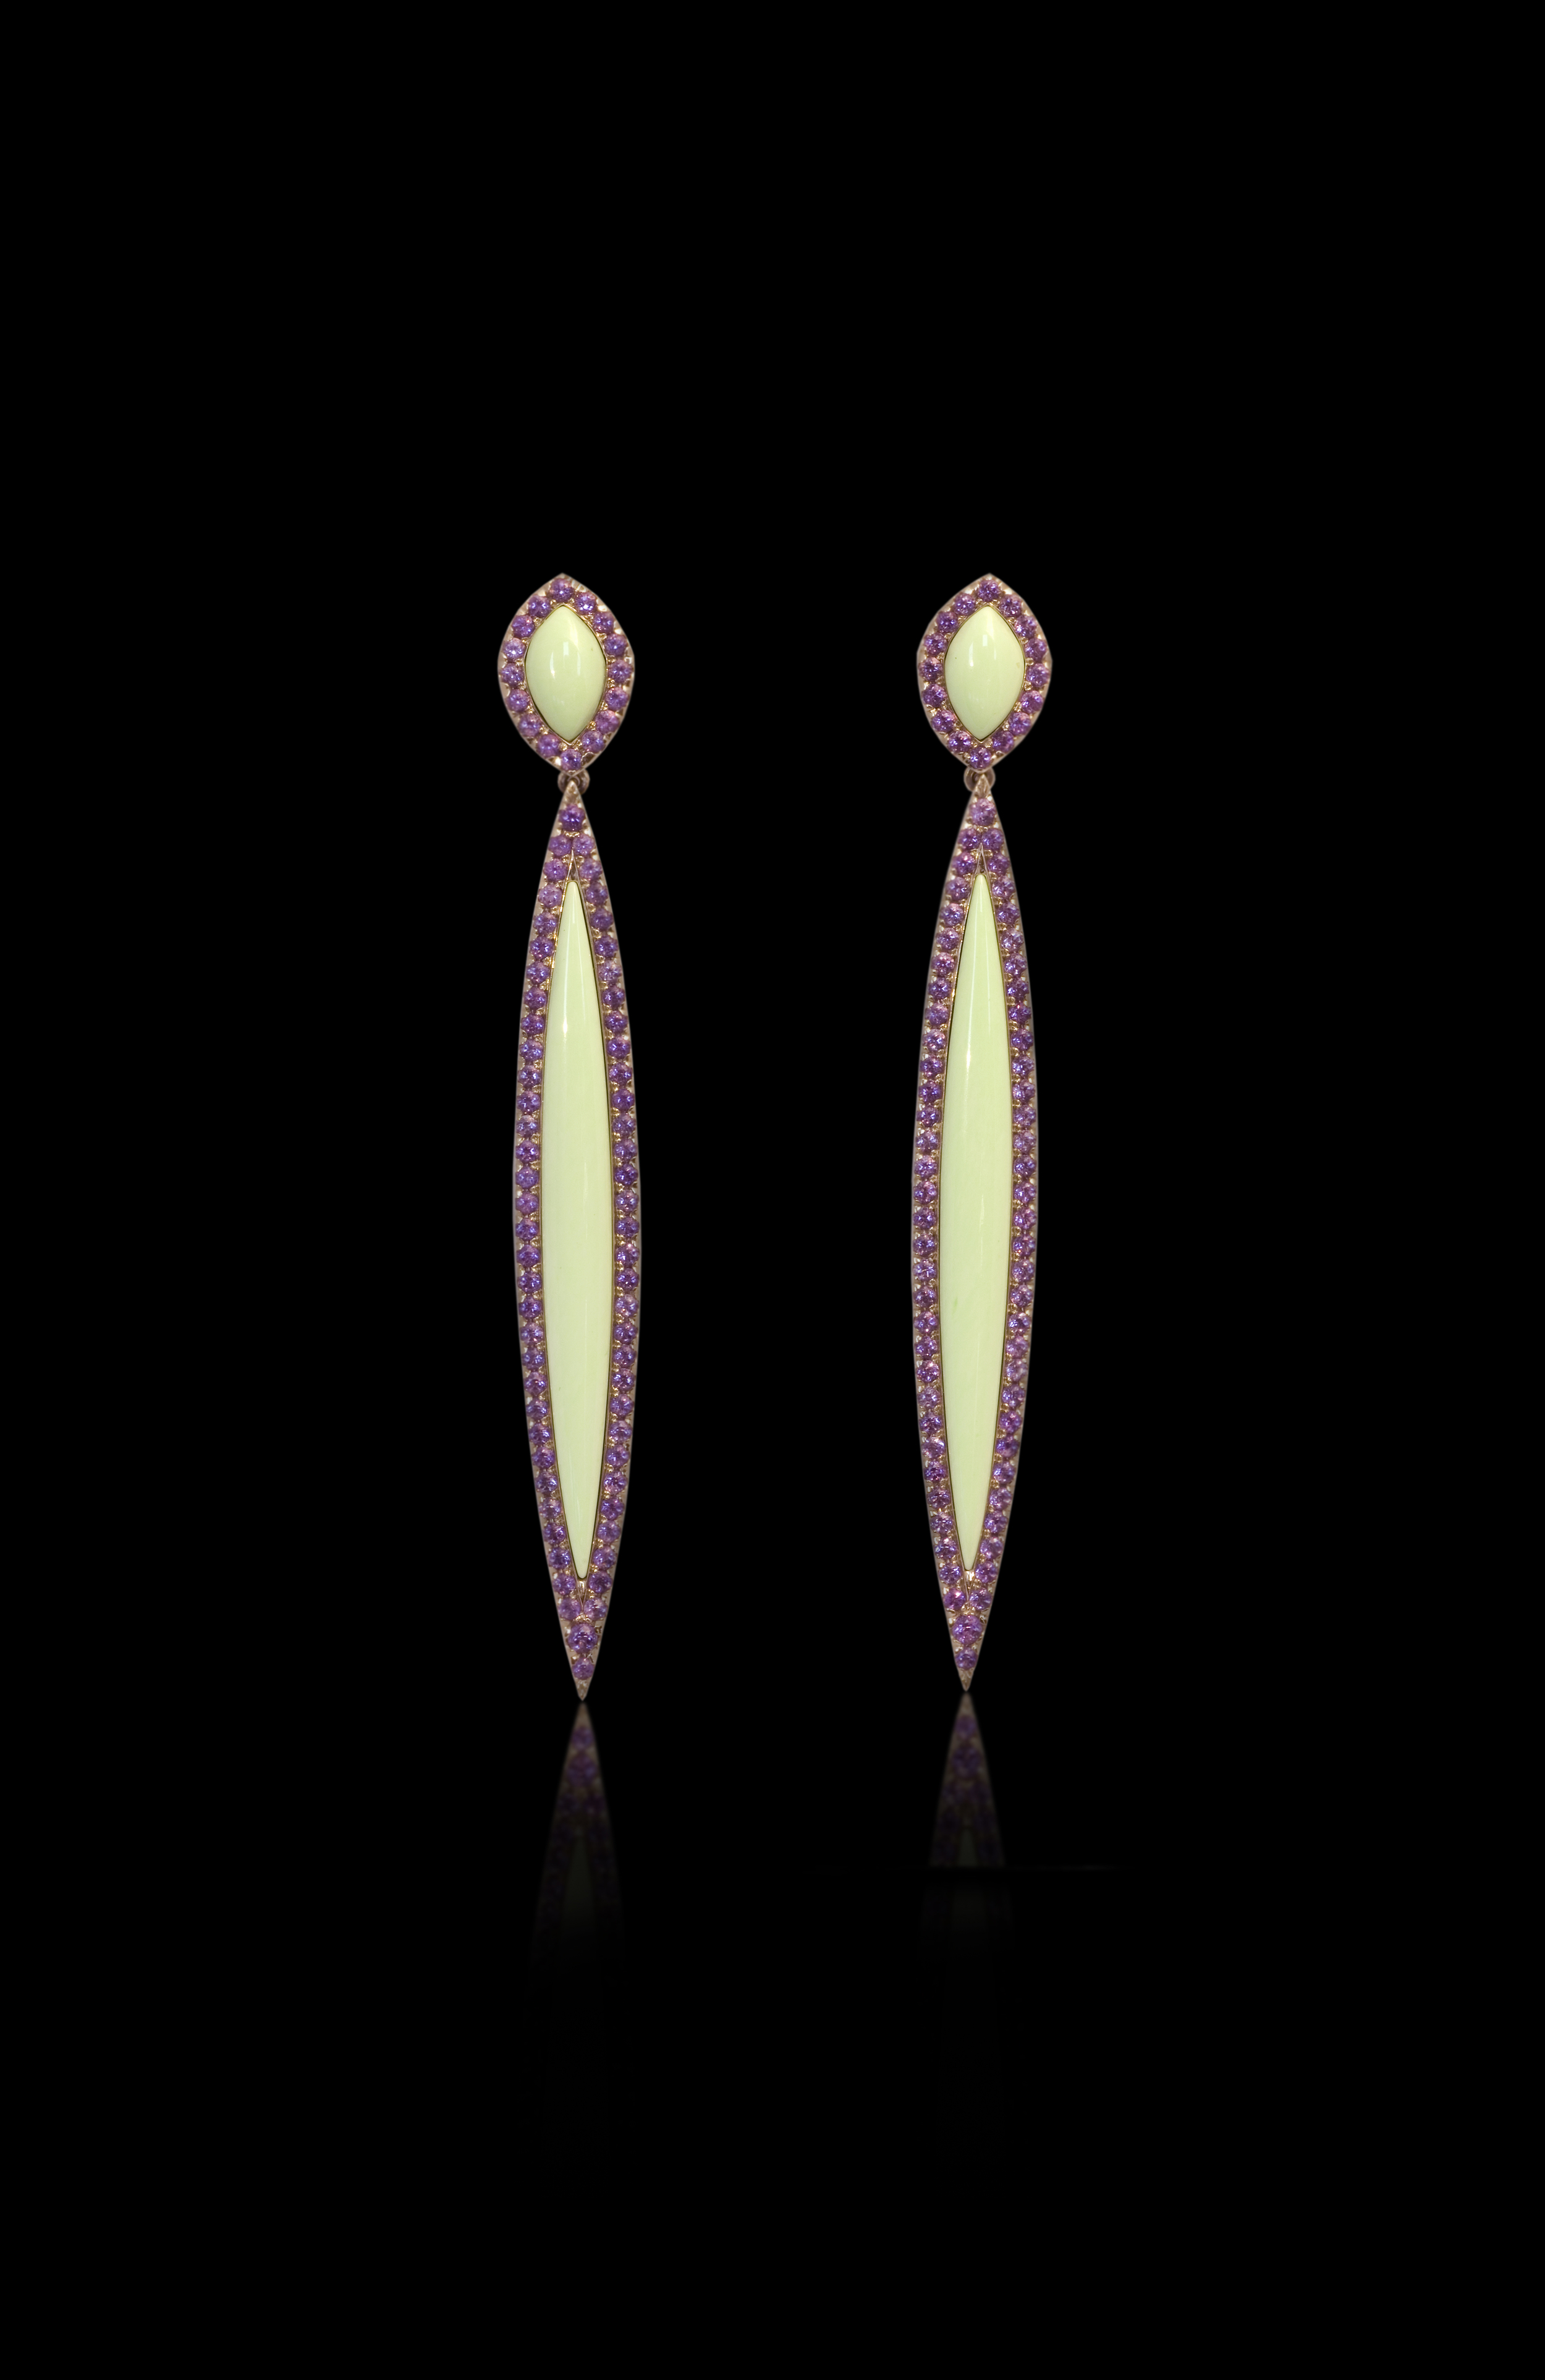 Colorful Princess   Color nourishes deeply emotions that cannot be ignored.    Earrings in 18 karat Yellow Gold, with Amethyst and lemon Chrysophrase      $4,500